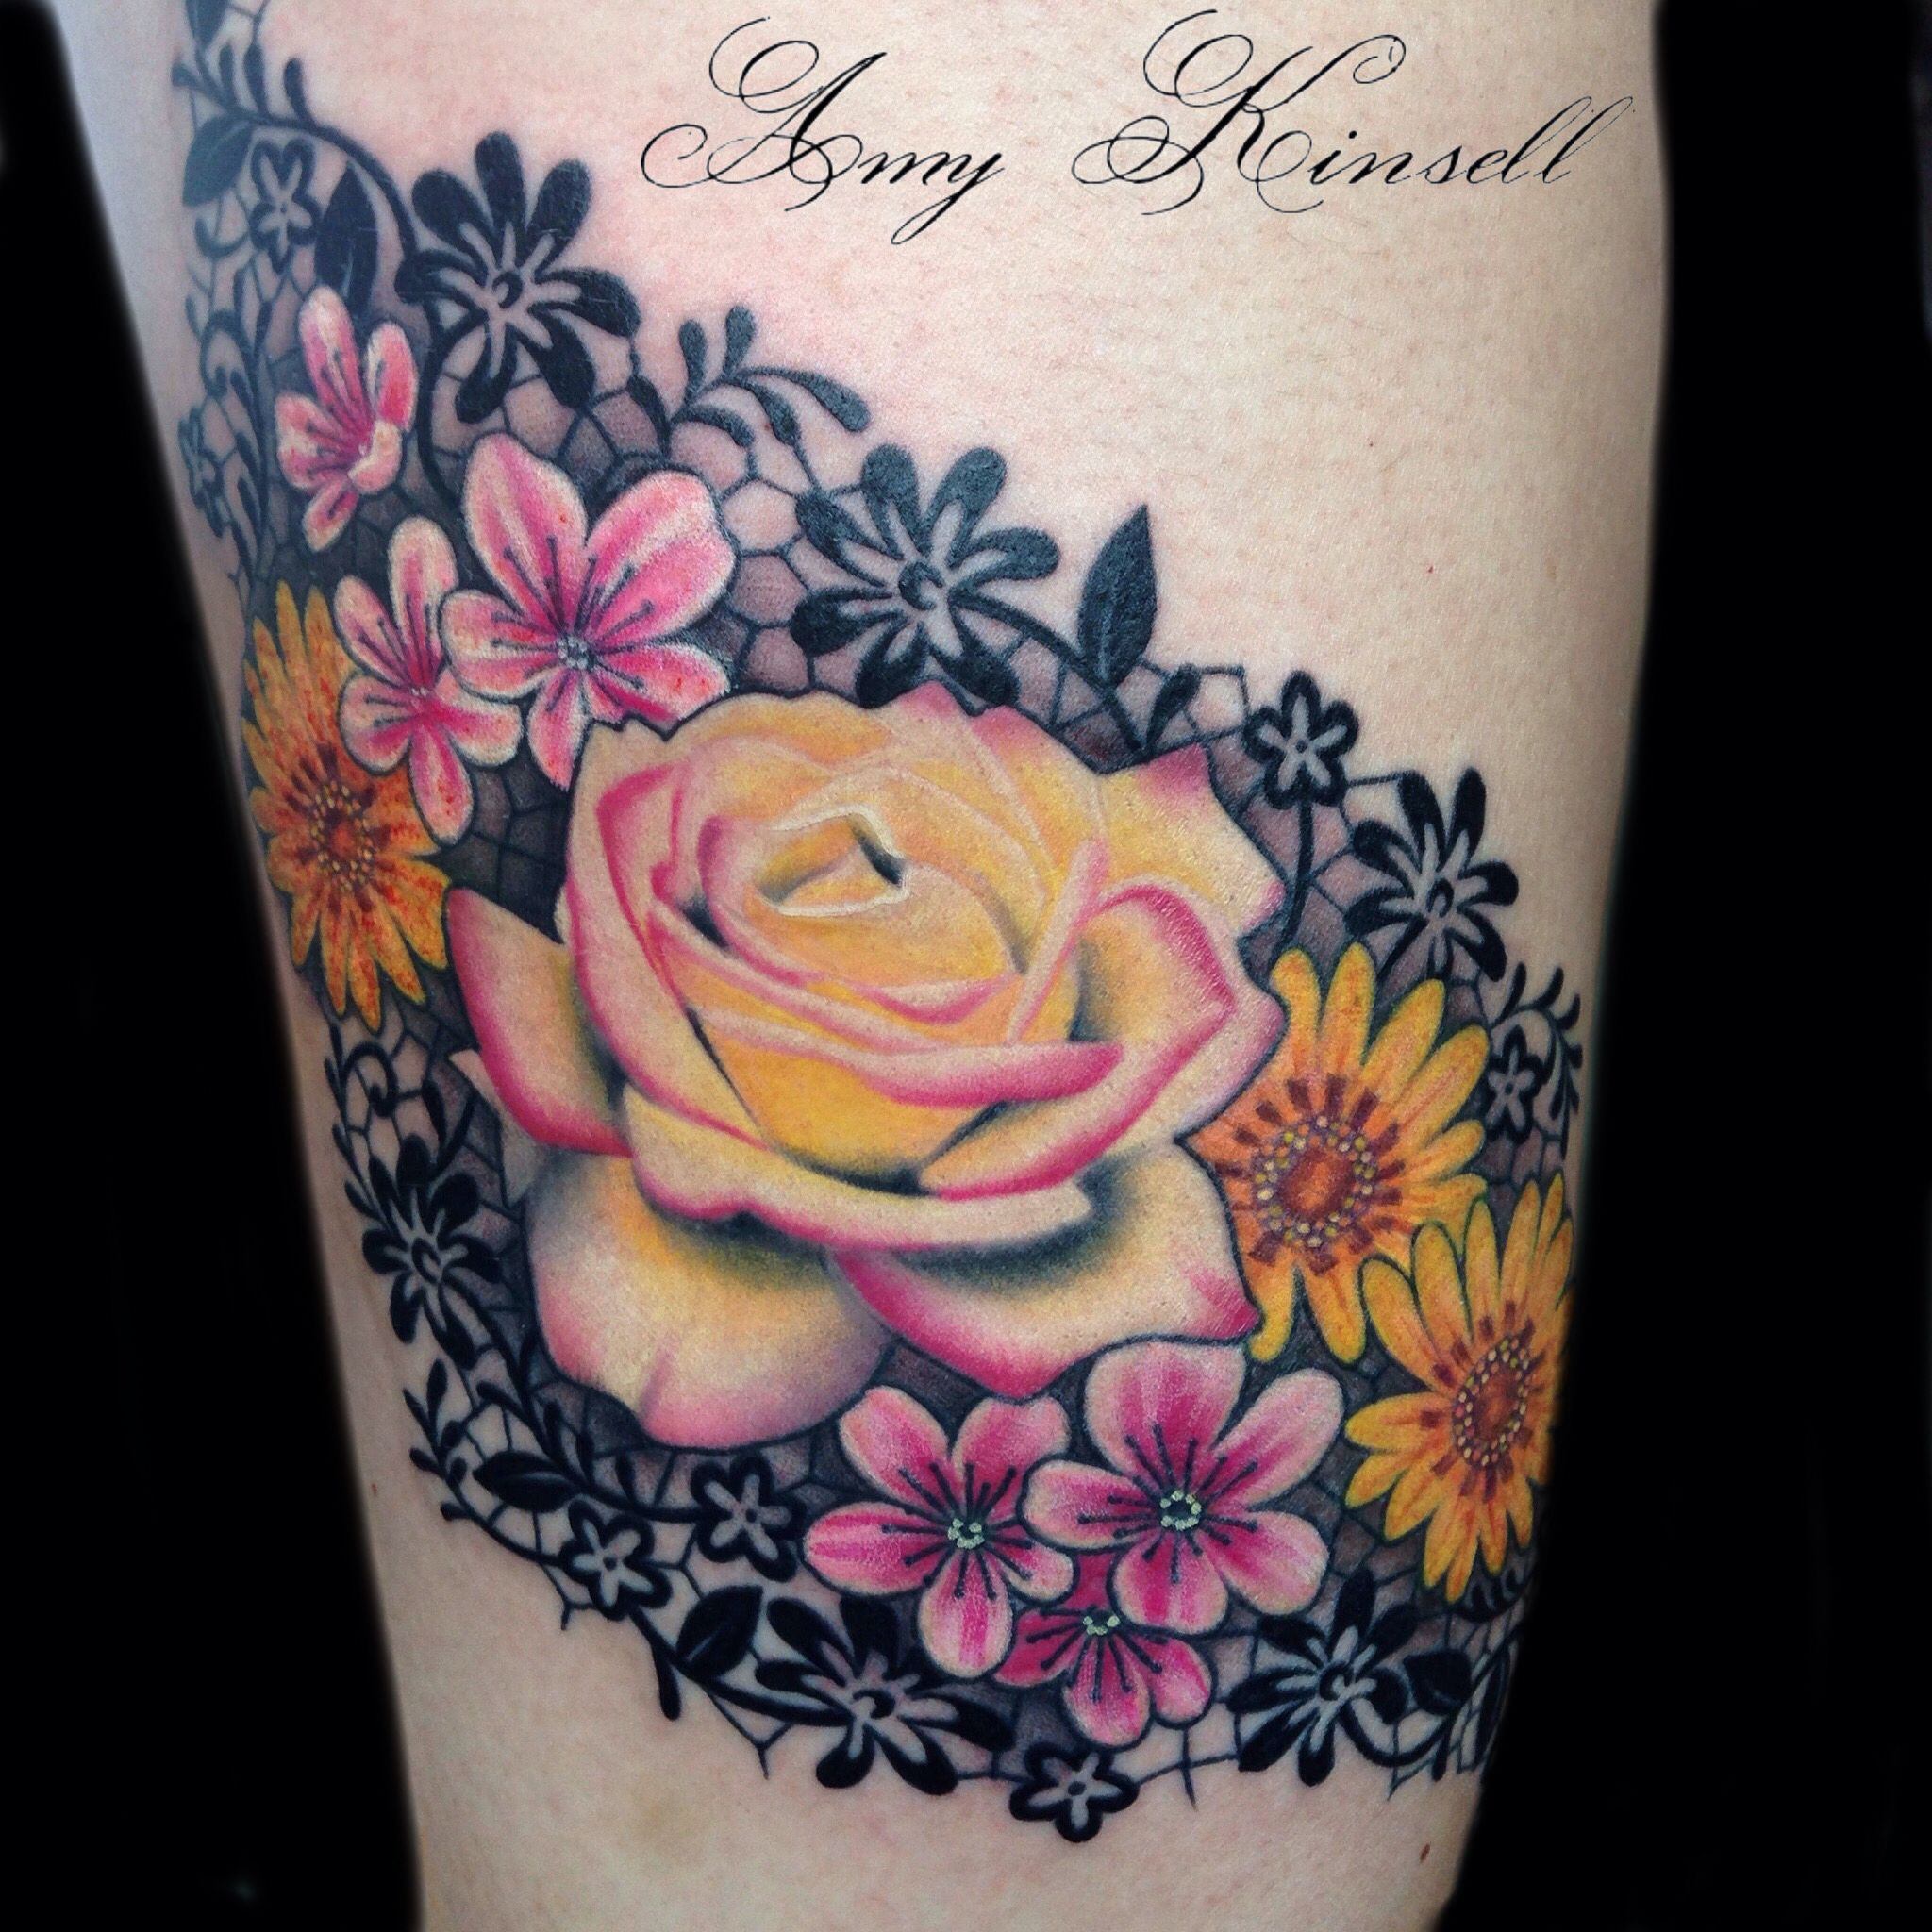 Roses and lace flowersu butterfly tats pinterest tatting